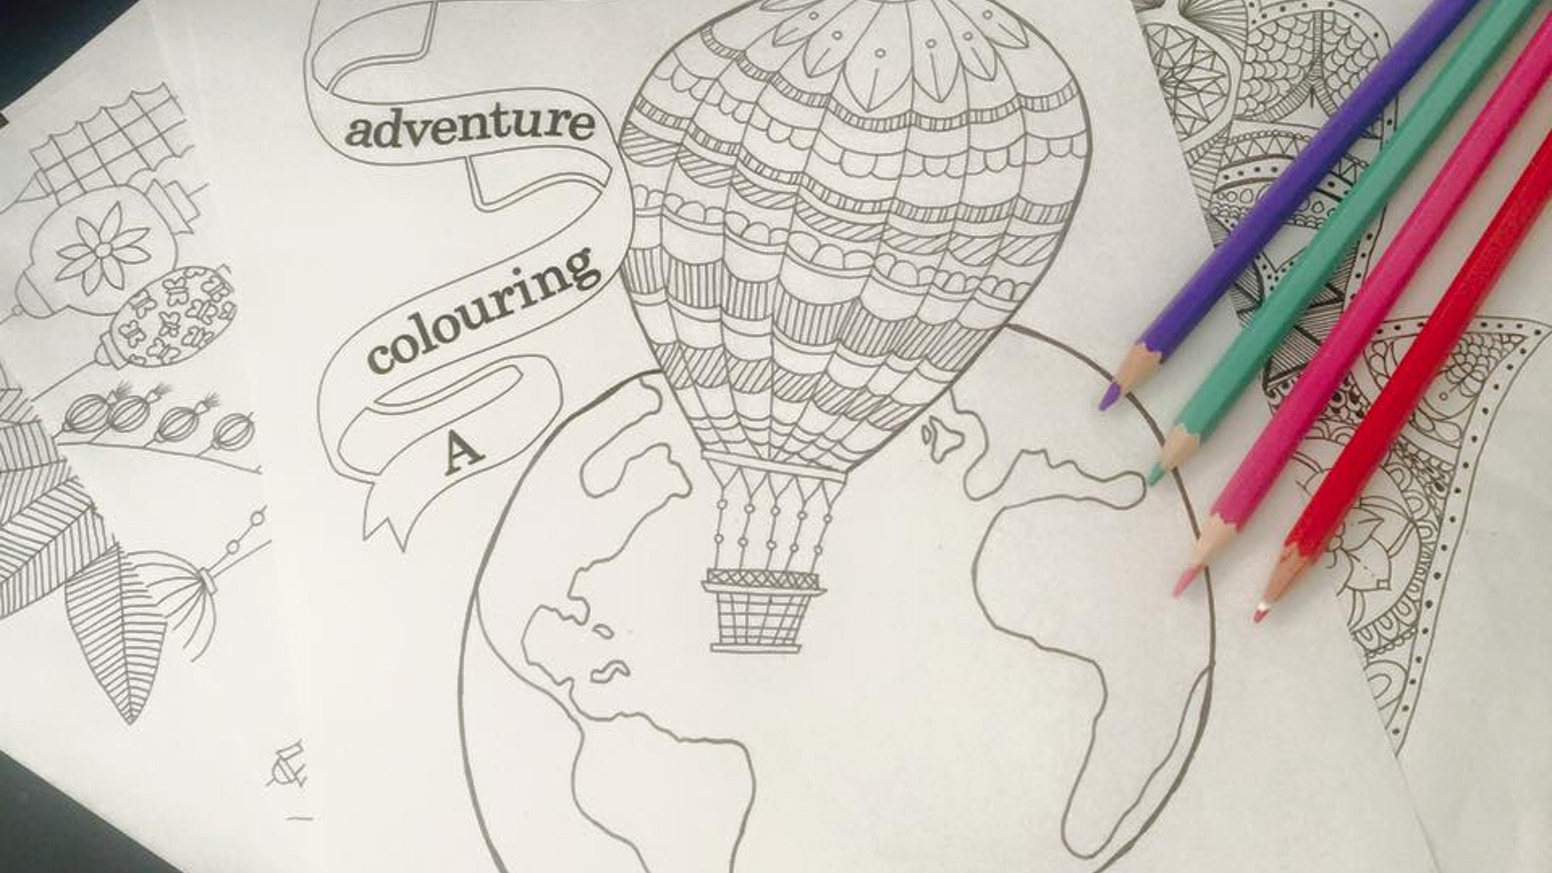 Travel On A Stress Free Colouring Journey Around The World From Comfort Of Your Own Home Kick Back And Let Book Transport You